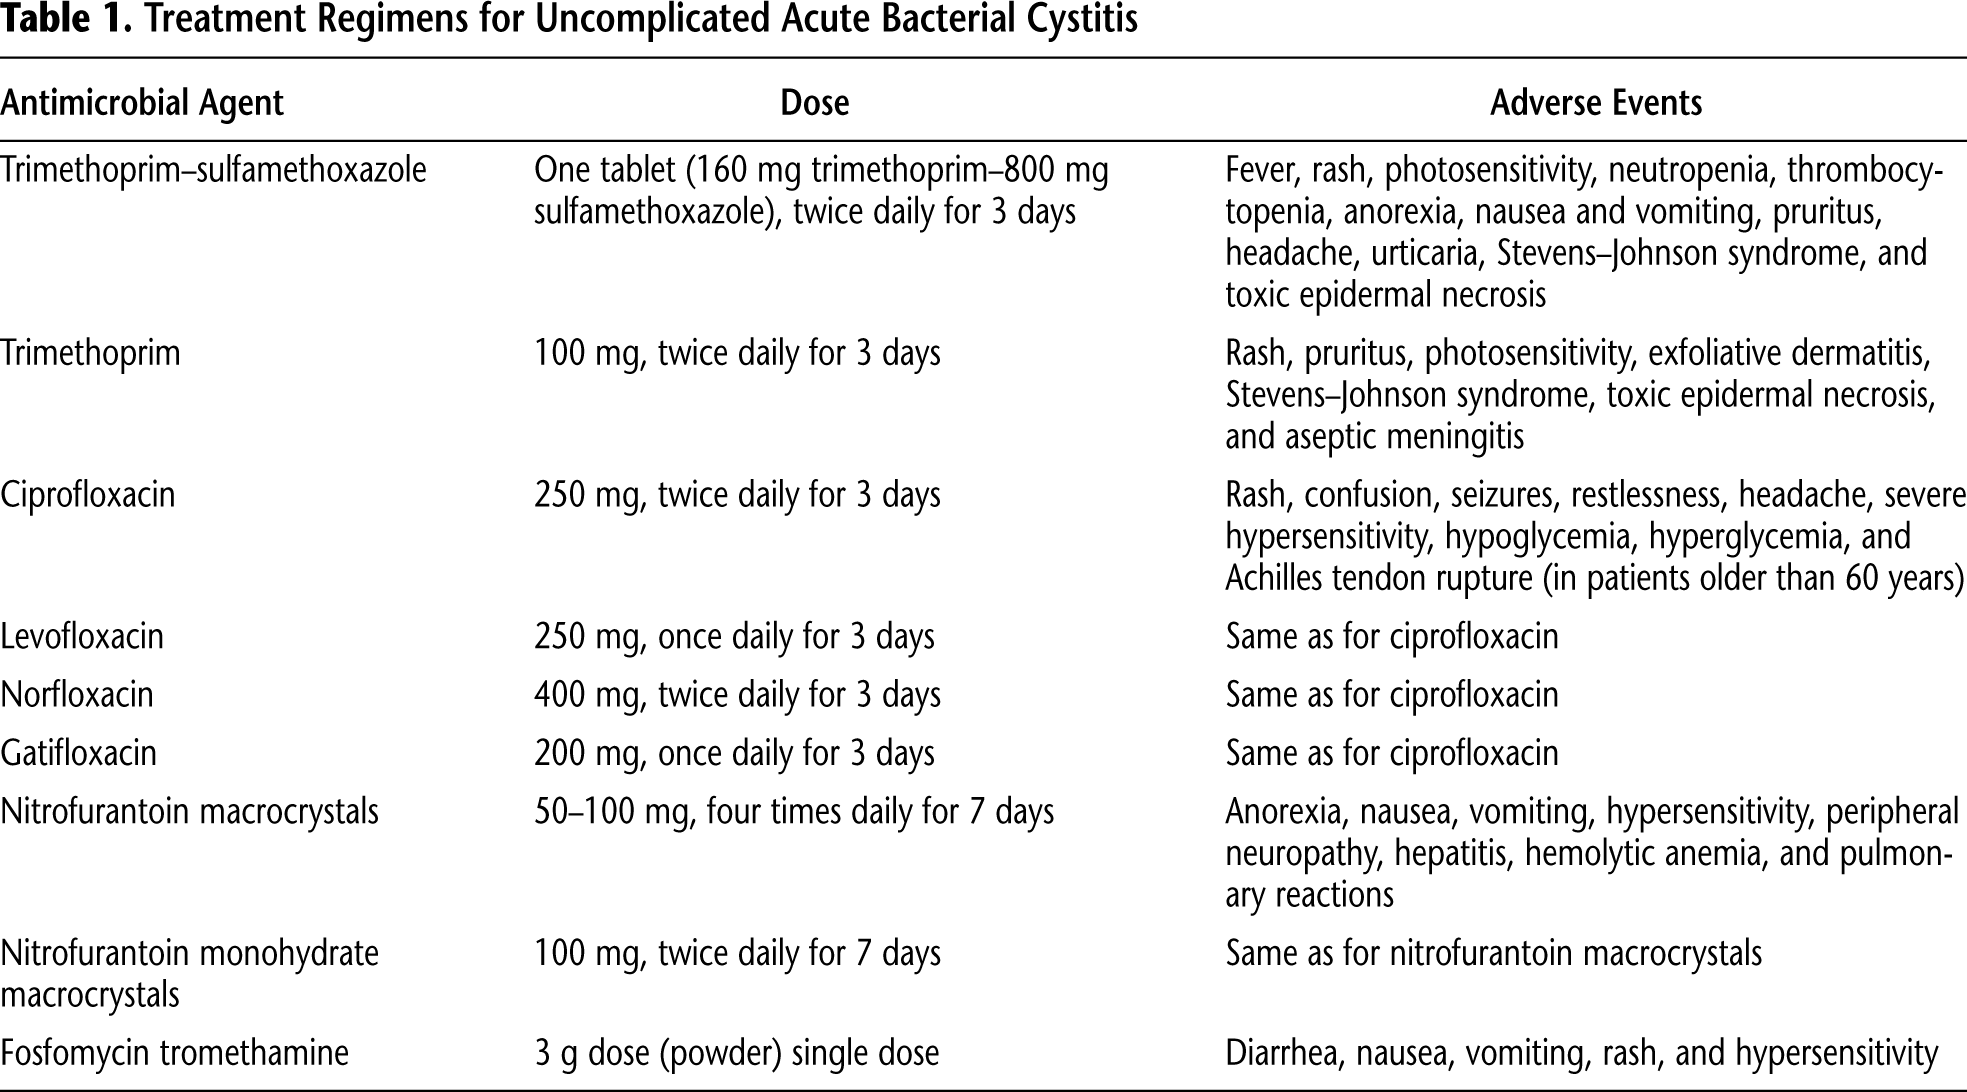 Table 1. Treatment Regimens for Uncomplicated Acute Bacterial Cystitis